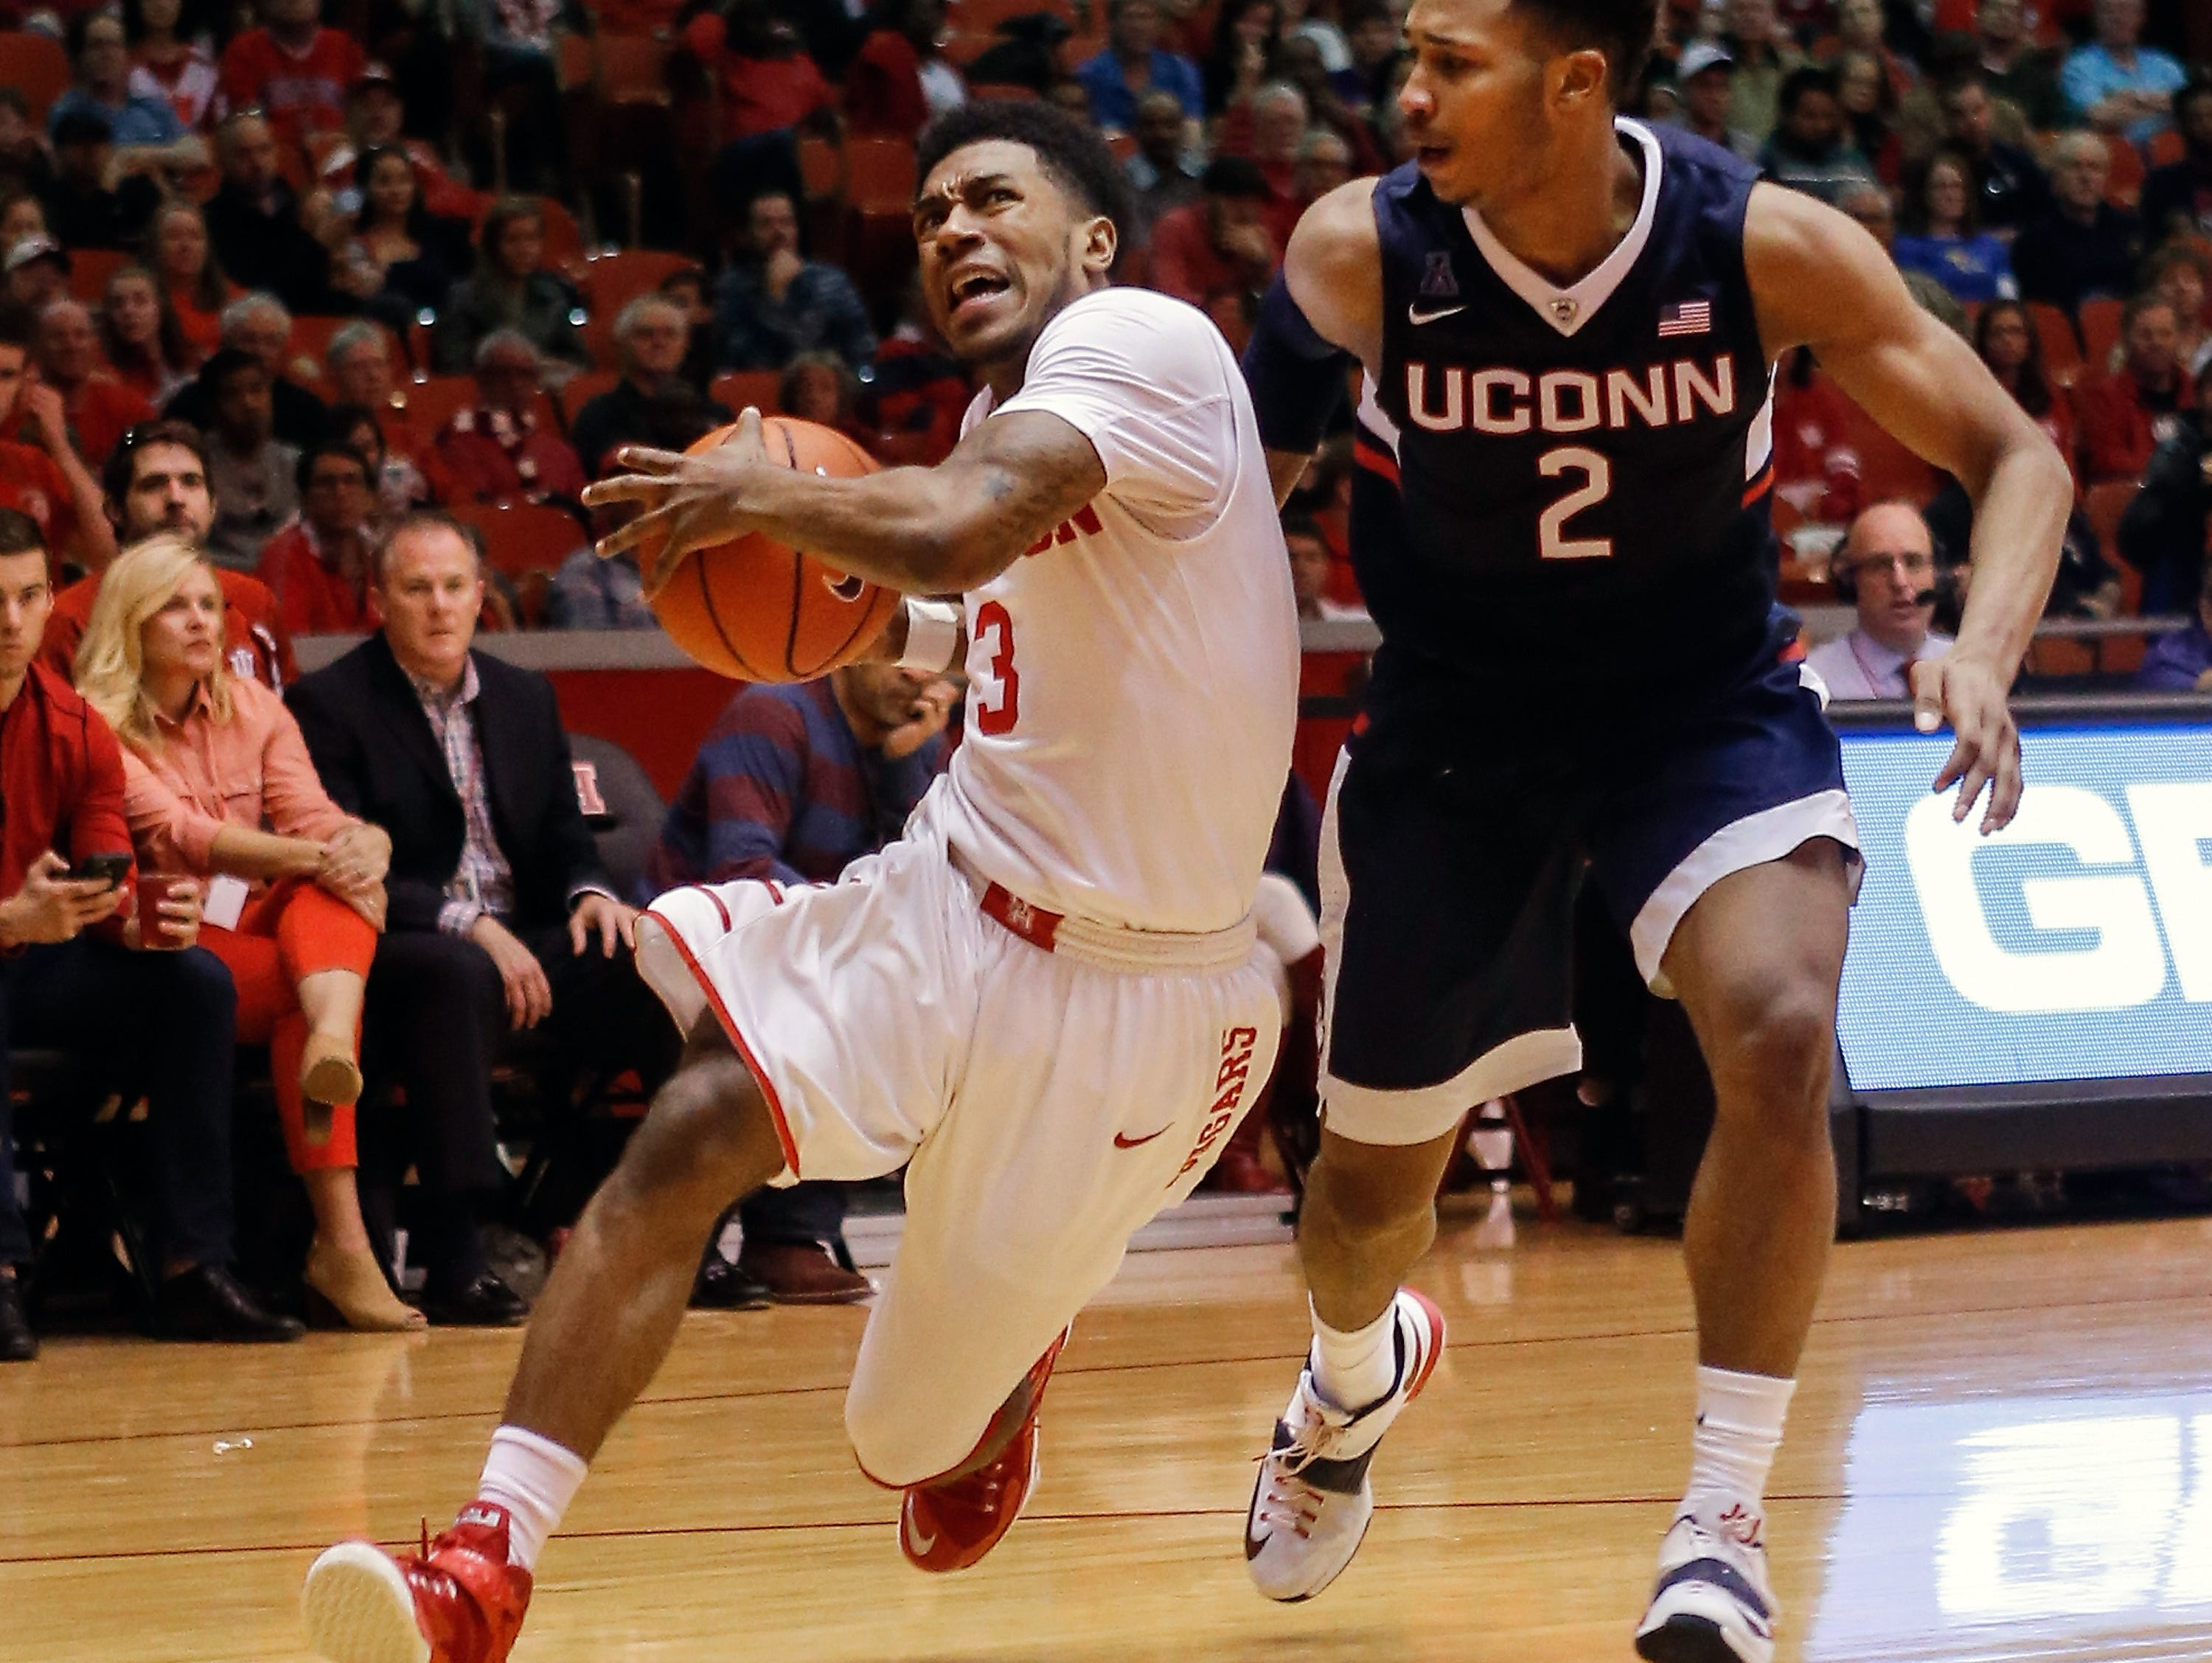 Houston guard Ronnie Johnson (3) drove around Connecticut guard Jalen Adams (2) during a game in January. Johnson, formerly of North Central and Purdue, is seeking to leave Houston now. Sunday, Jan. 17, 2016 in Houston. Connecticut won 69-57. (AP Photo/Bob Levey)